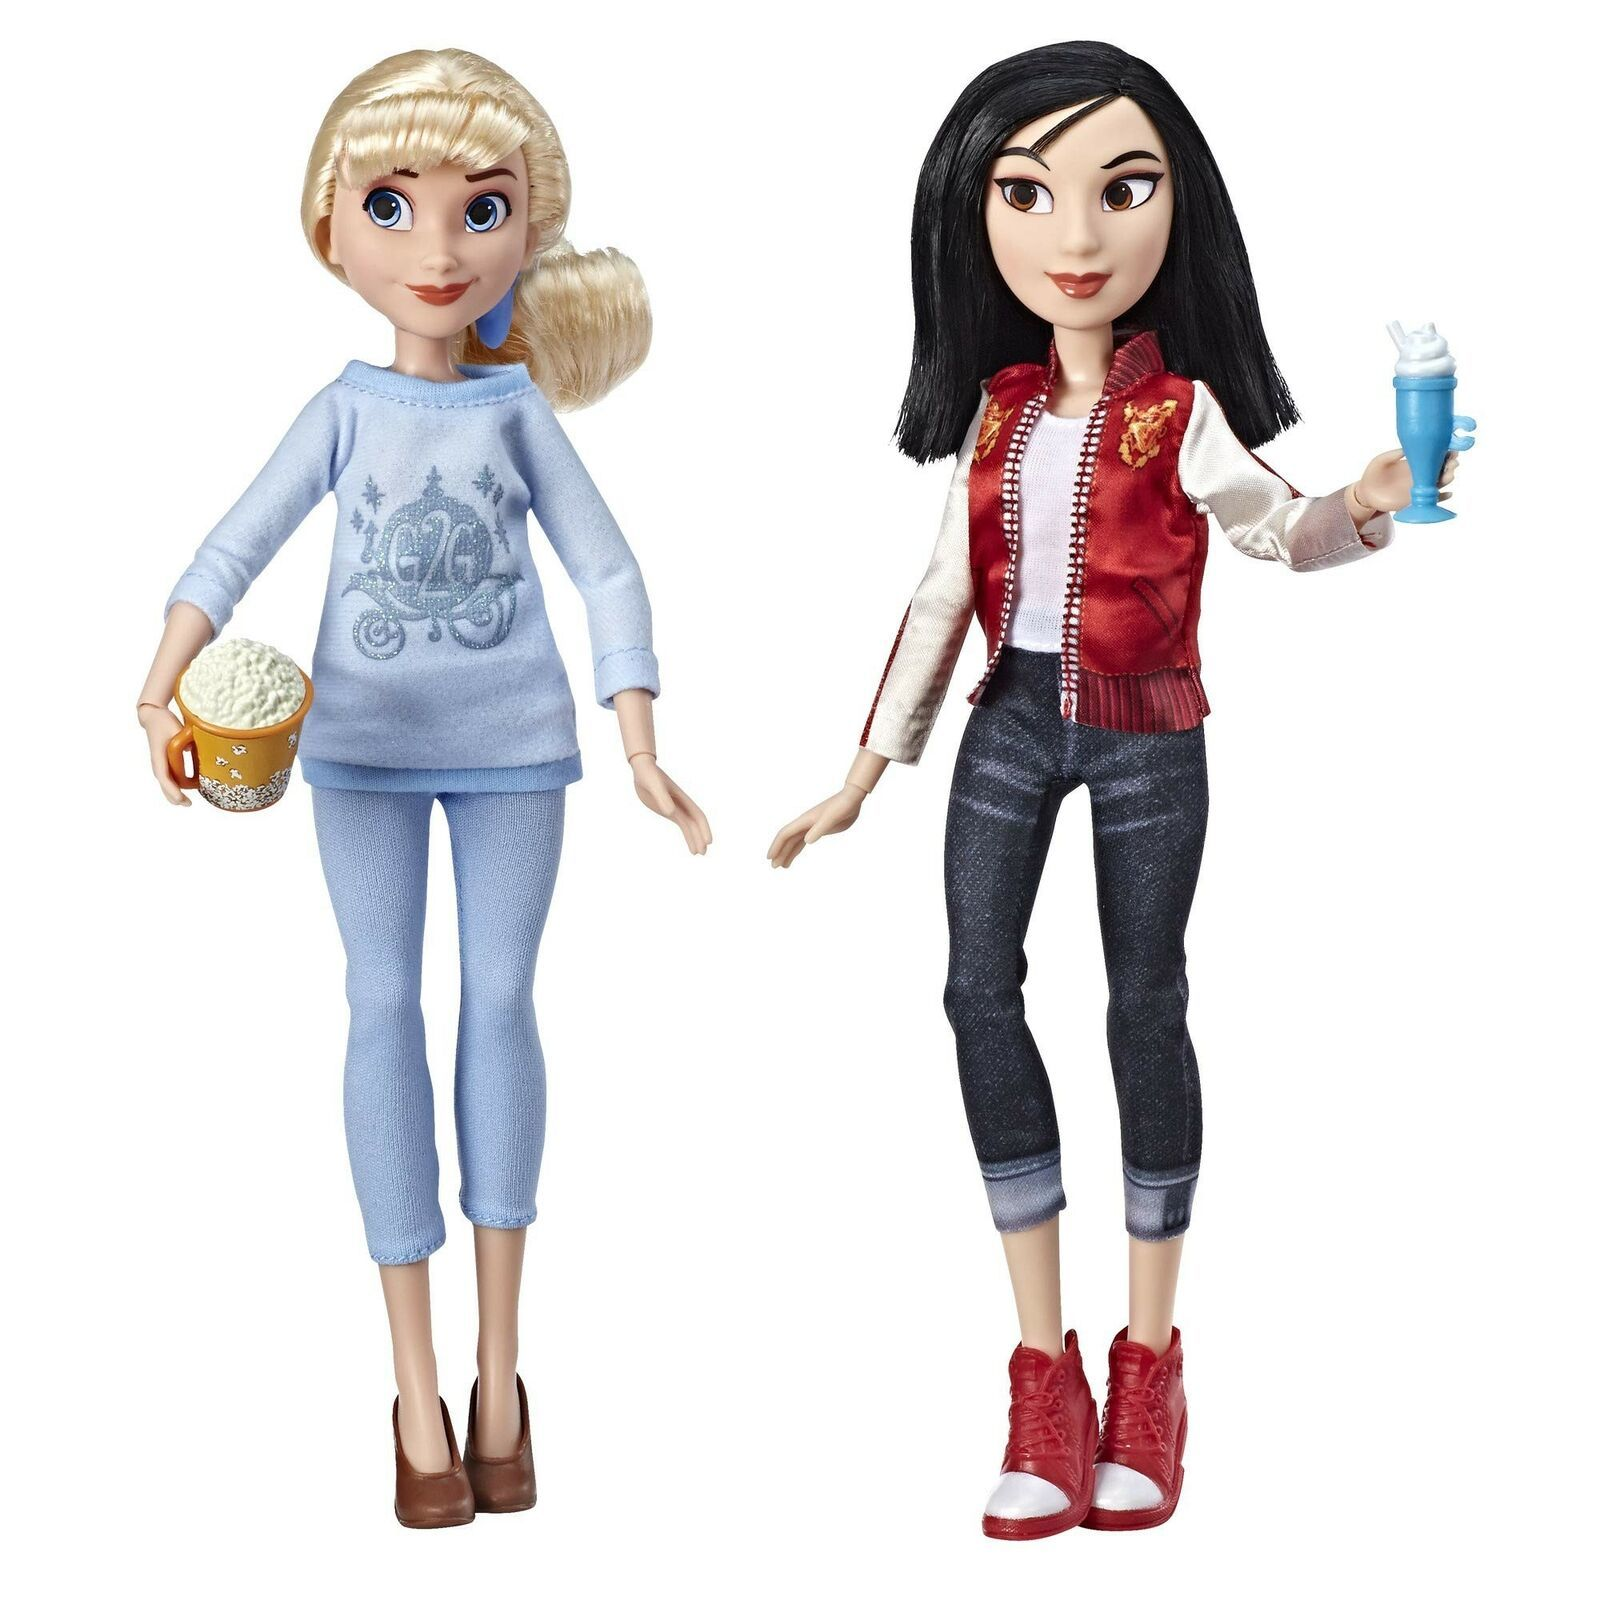 Disney Princess Ralph Breaks The Internet Movie Dolls, Cinderella & Mulan Dol... - $30.72